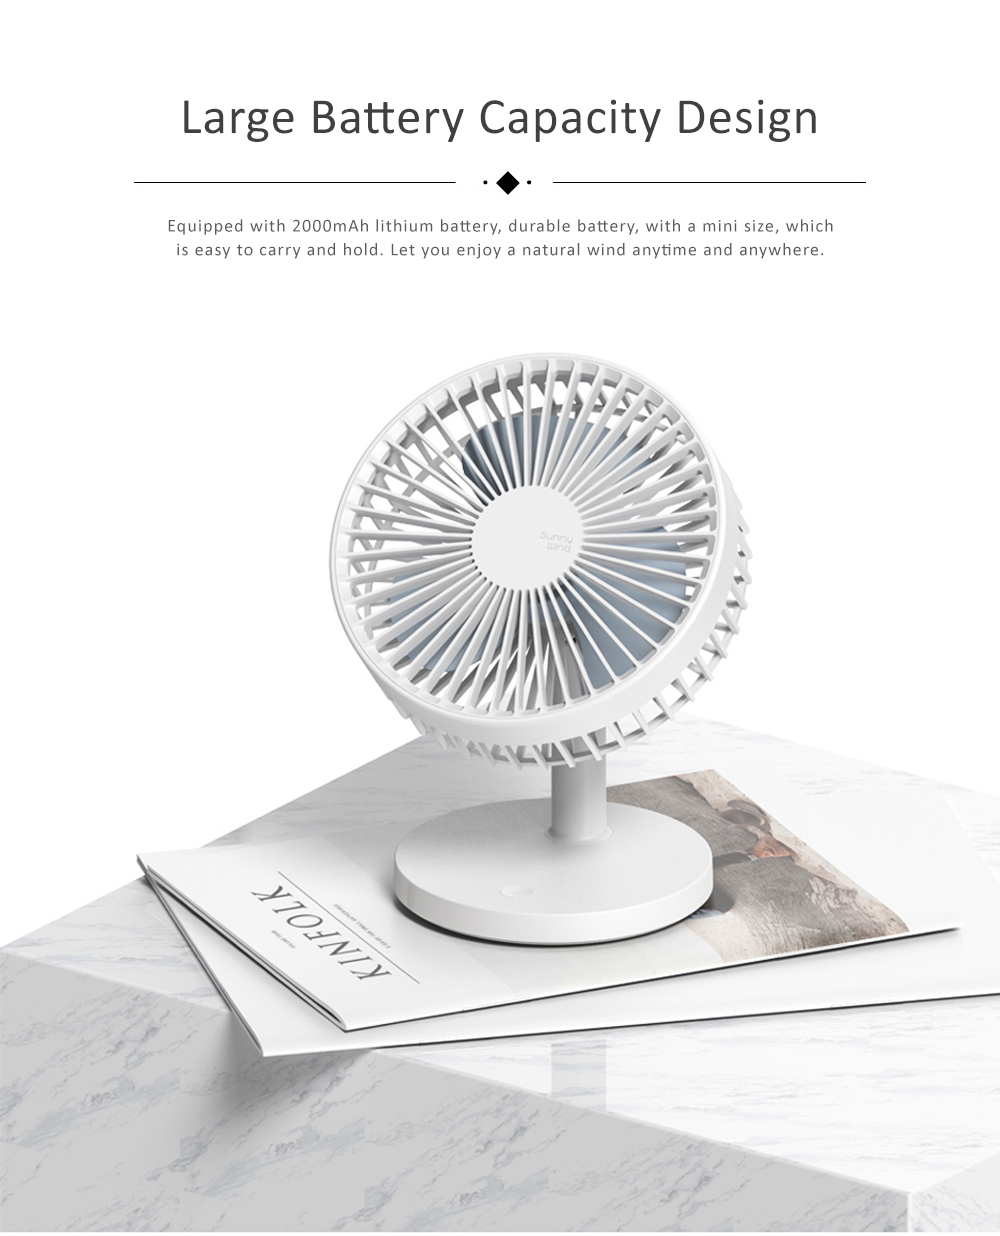 Children Rechargeable Desktop Fan, USB Portable Handheld Mini Noiseless Fan for Office, Dormitory 1